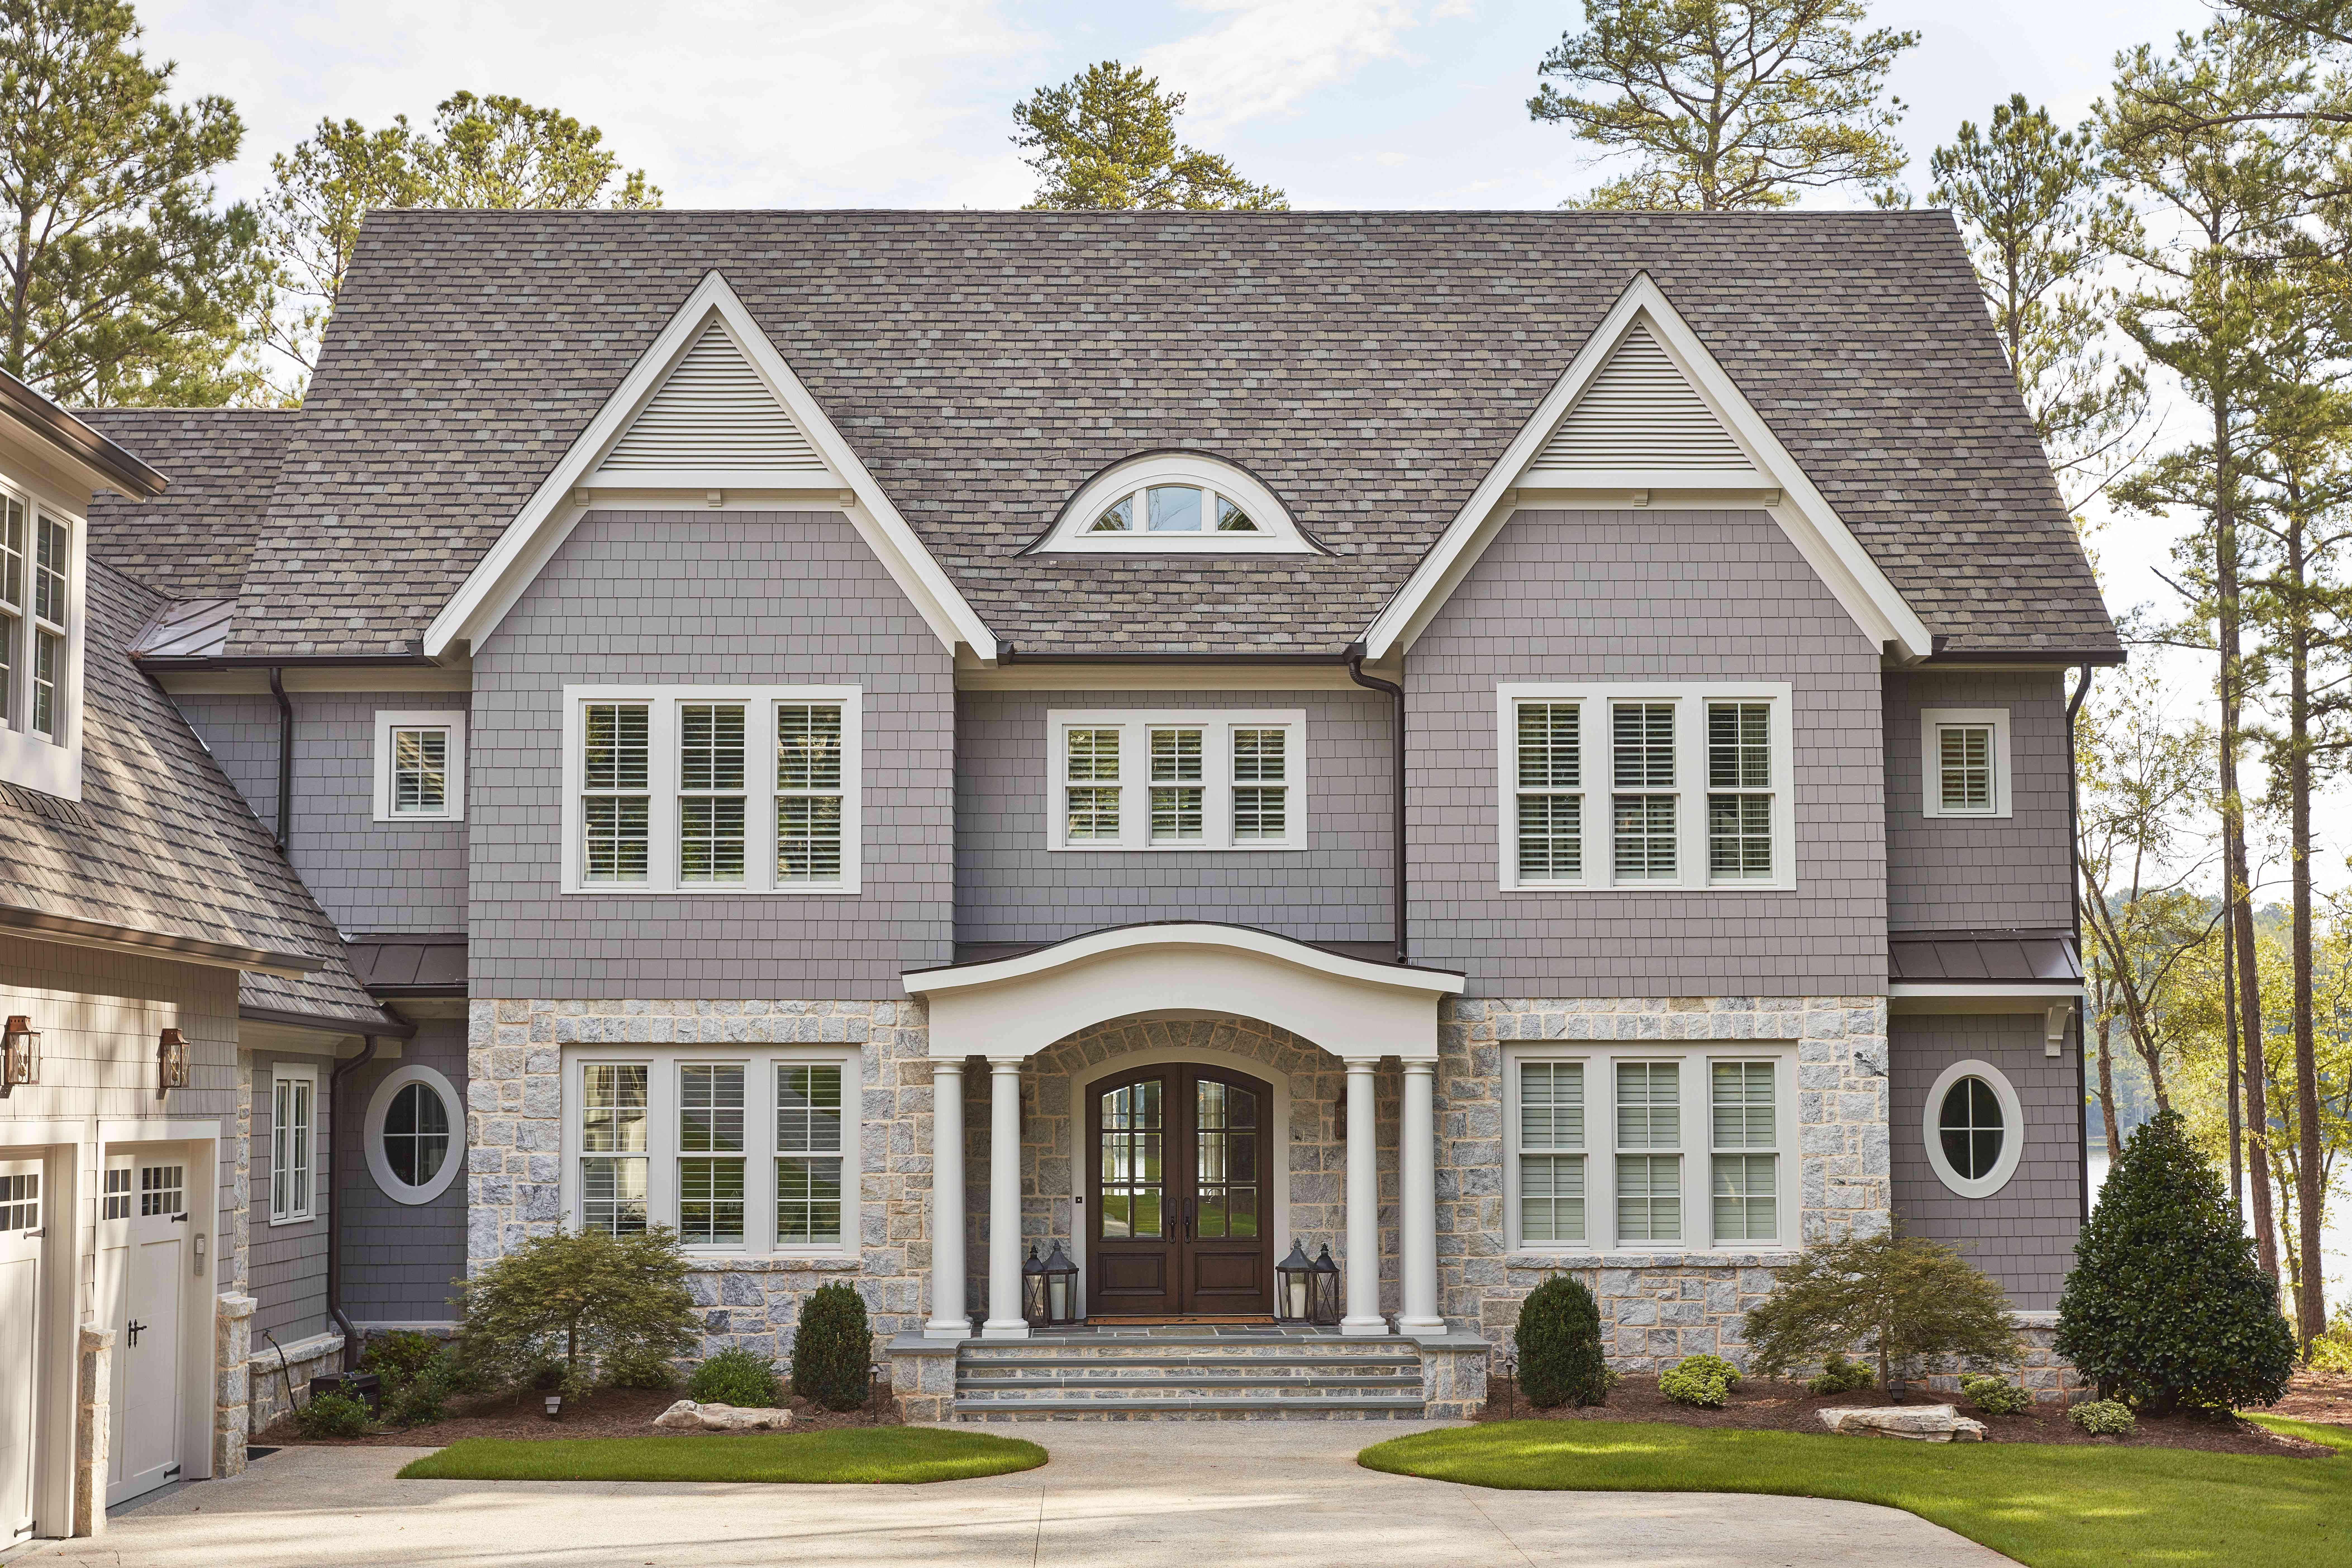 House with gray exterior